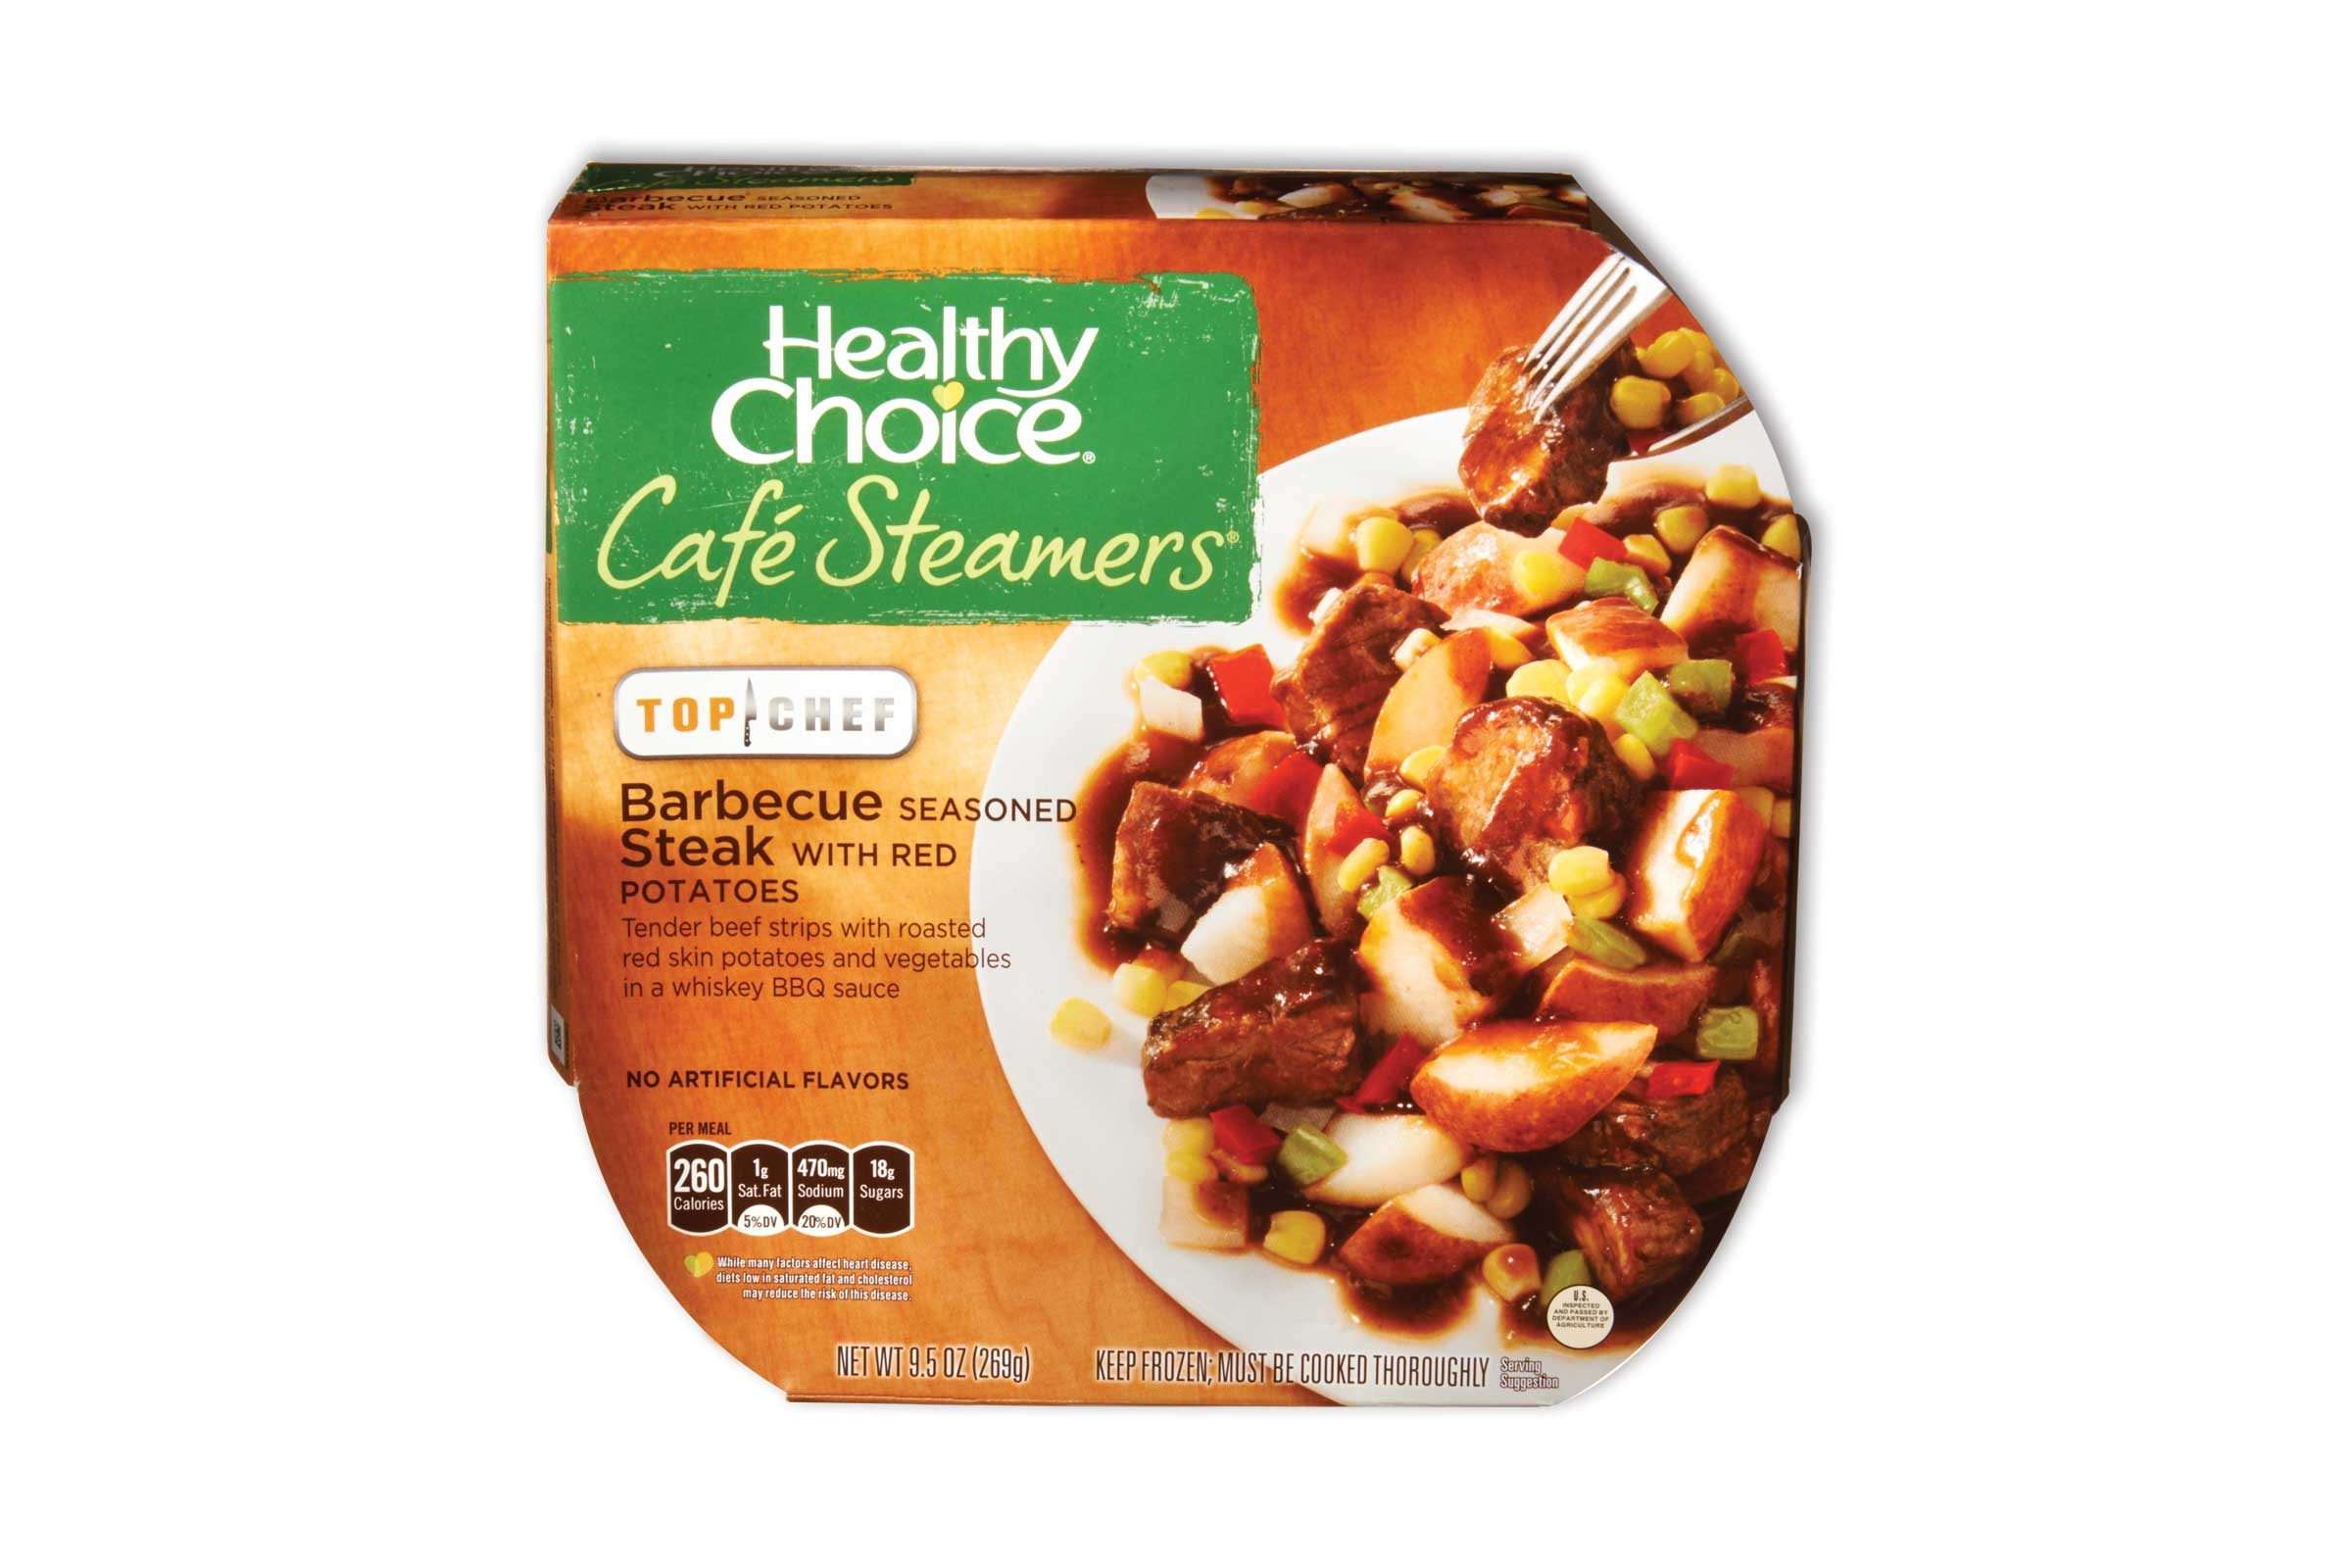 Healthy Choice Café Steamers Barbecue Seasoned Steak With Red Potatoes 260 Calories